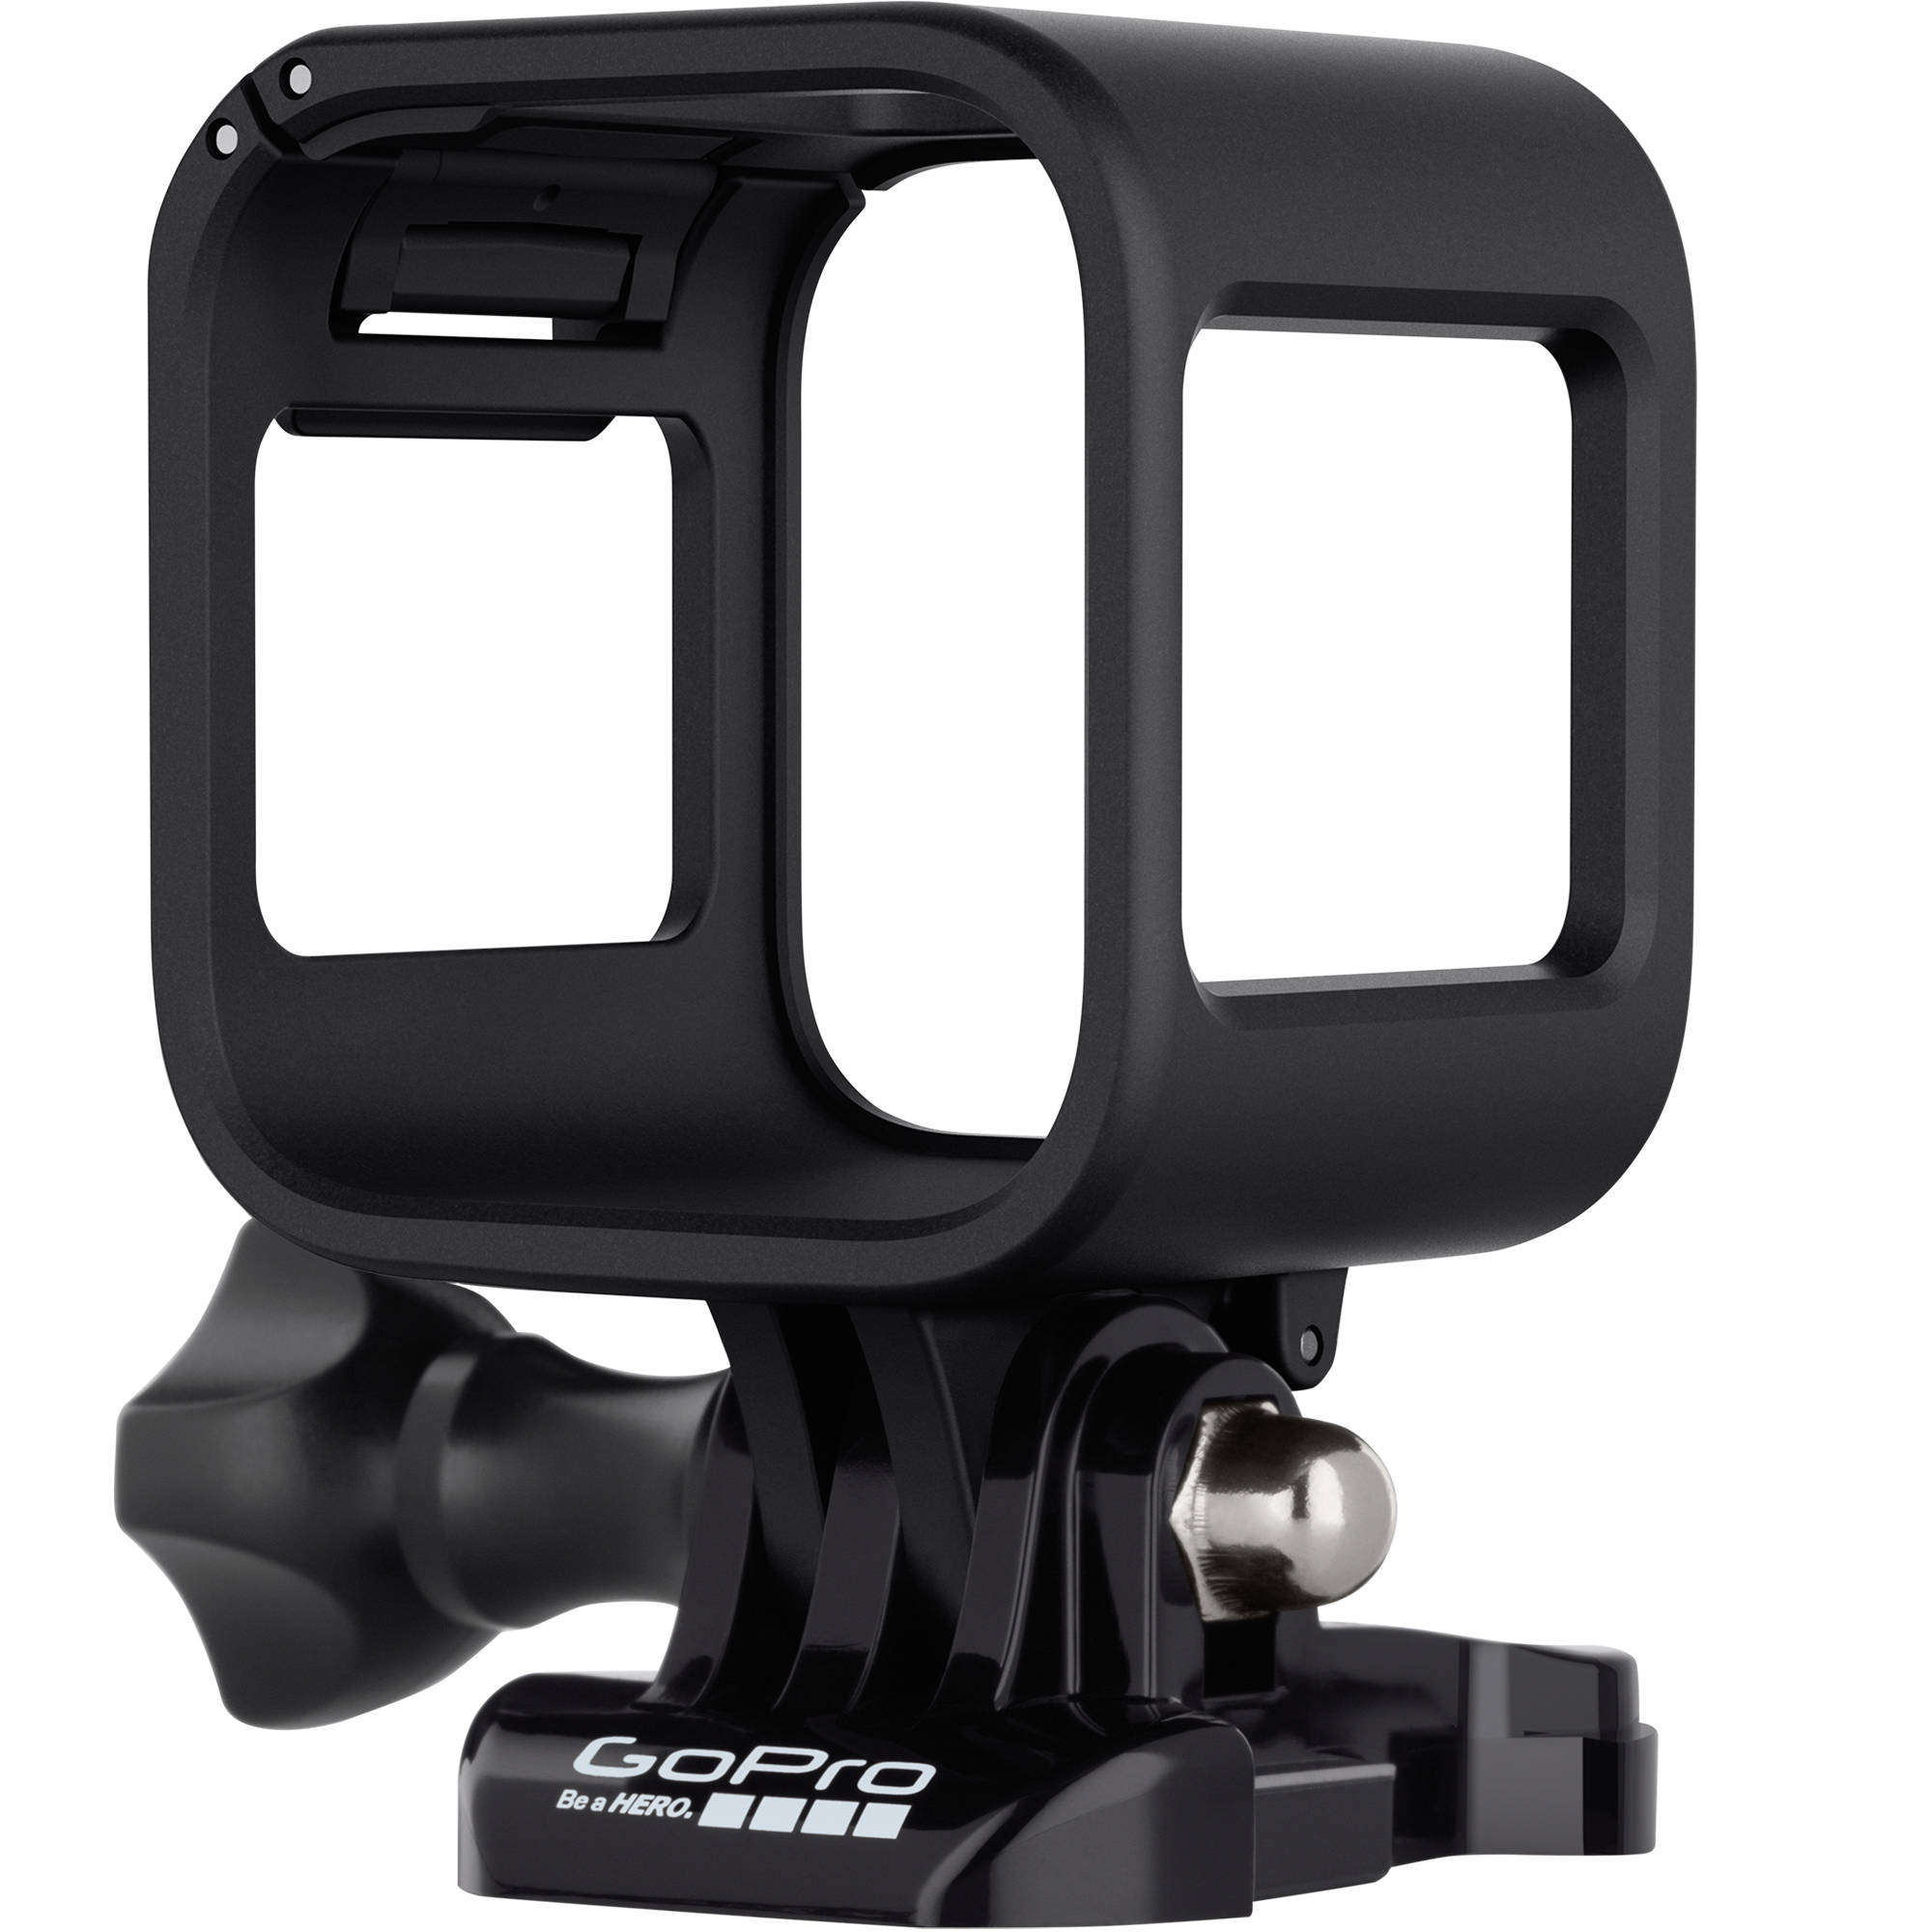 GoPro The Standard Frame for HERO Session Cameras ARFRM-002 B&H